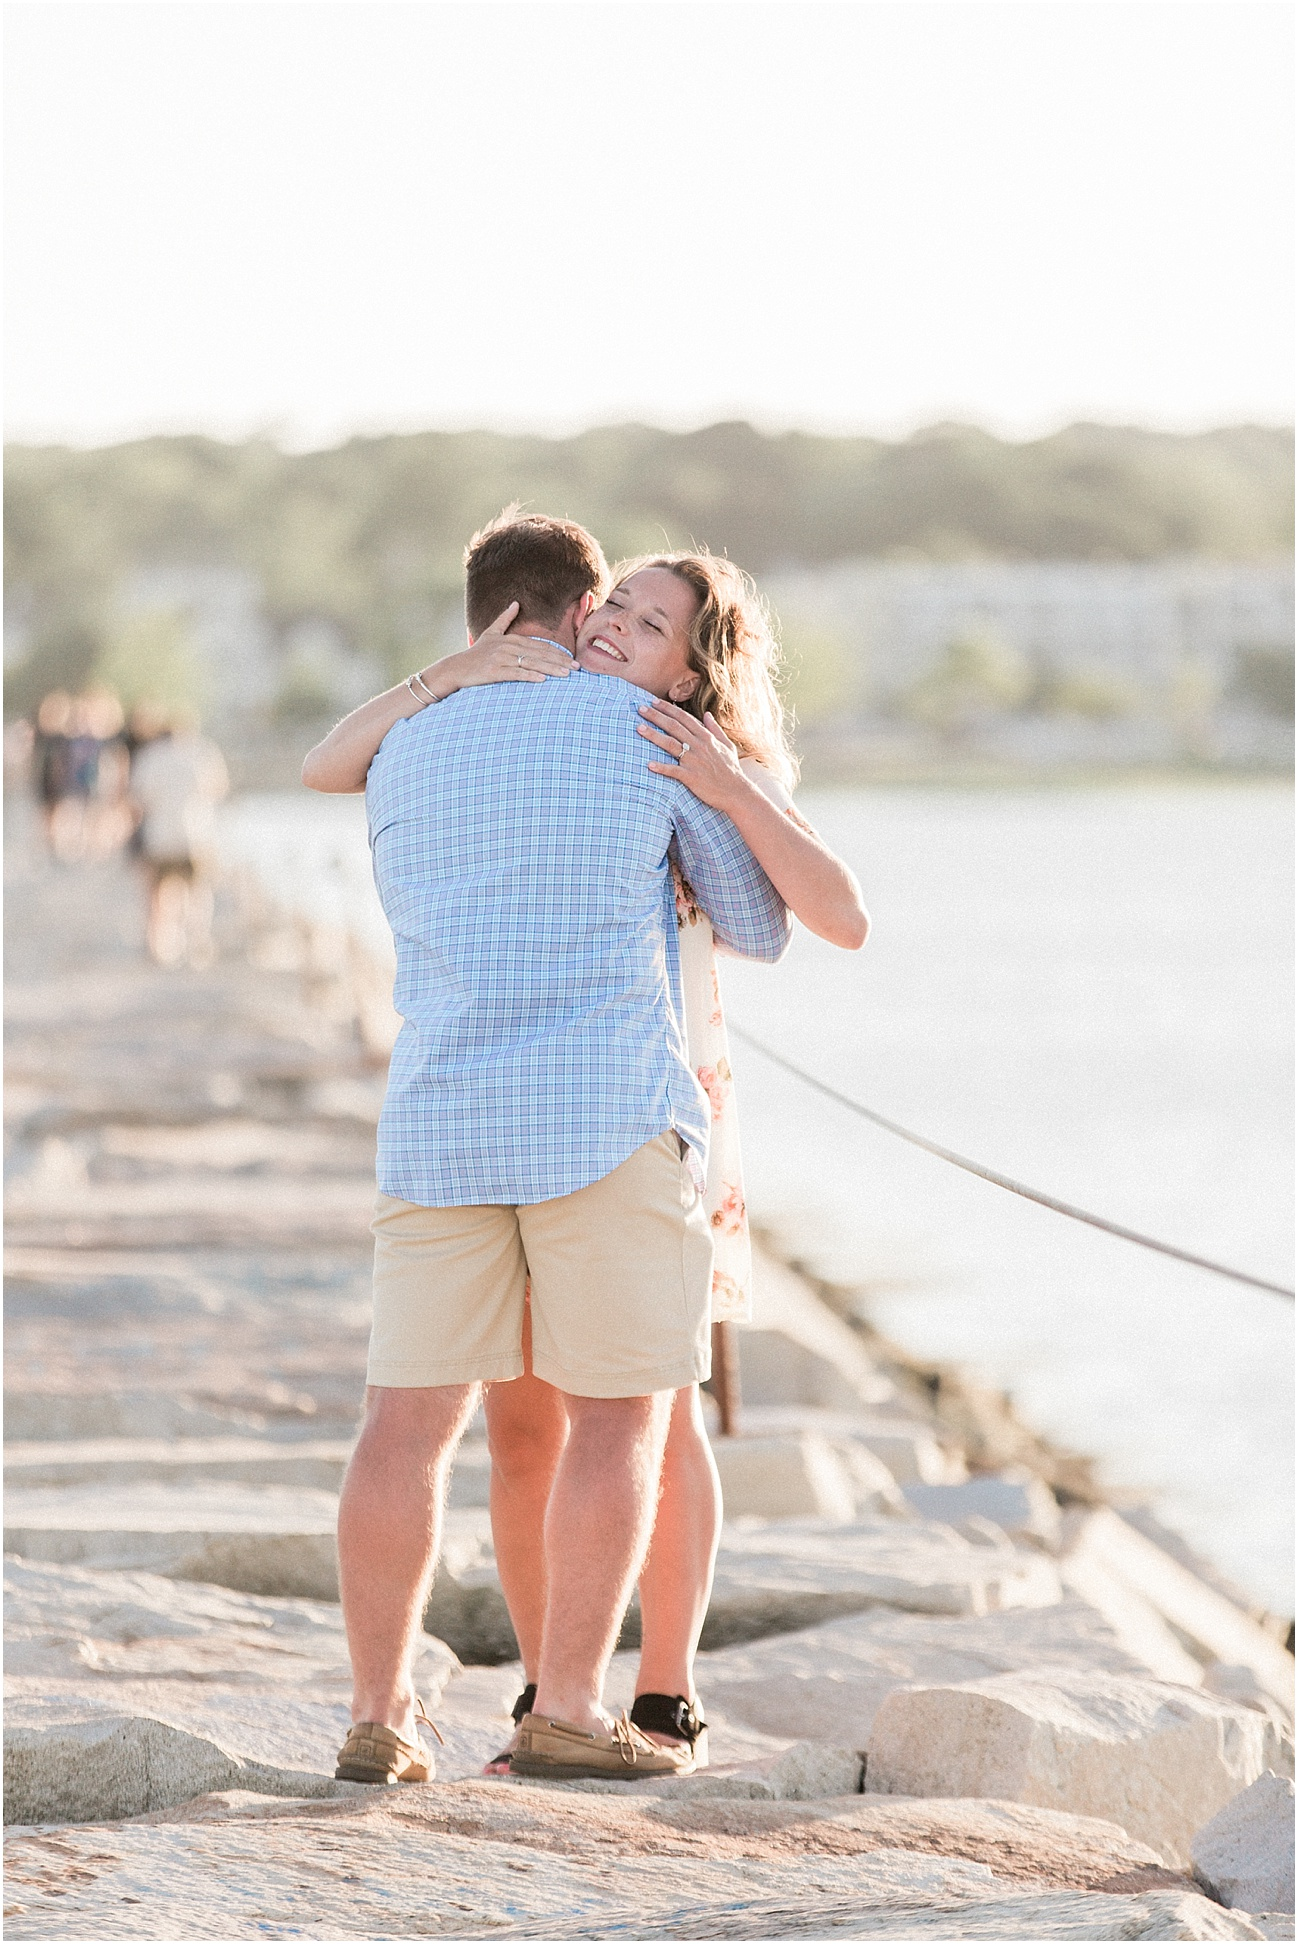 plymouth_jetty_proposal_engagement_cape_cod_boston_wedding_photographer_meredith_jane_photography_photo_0520.jpg